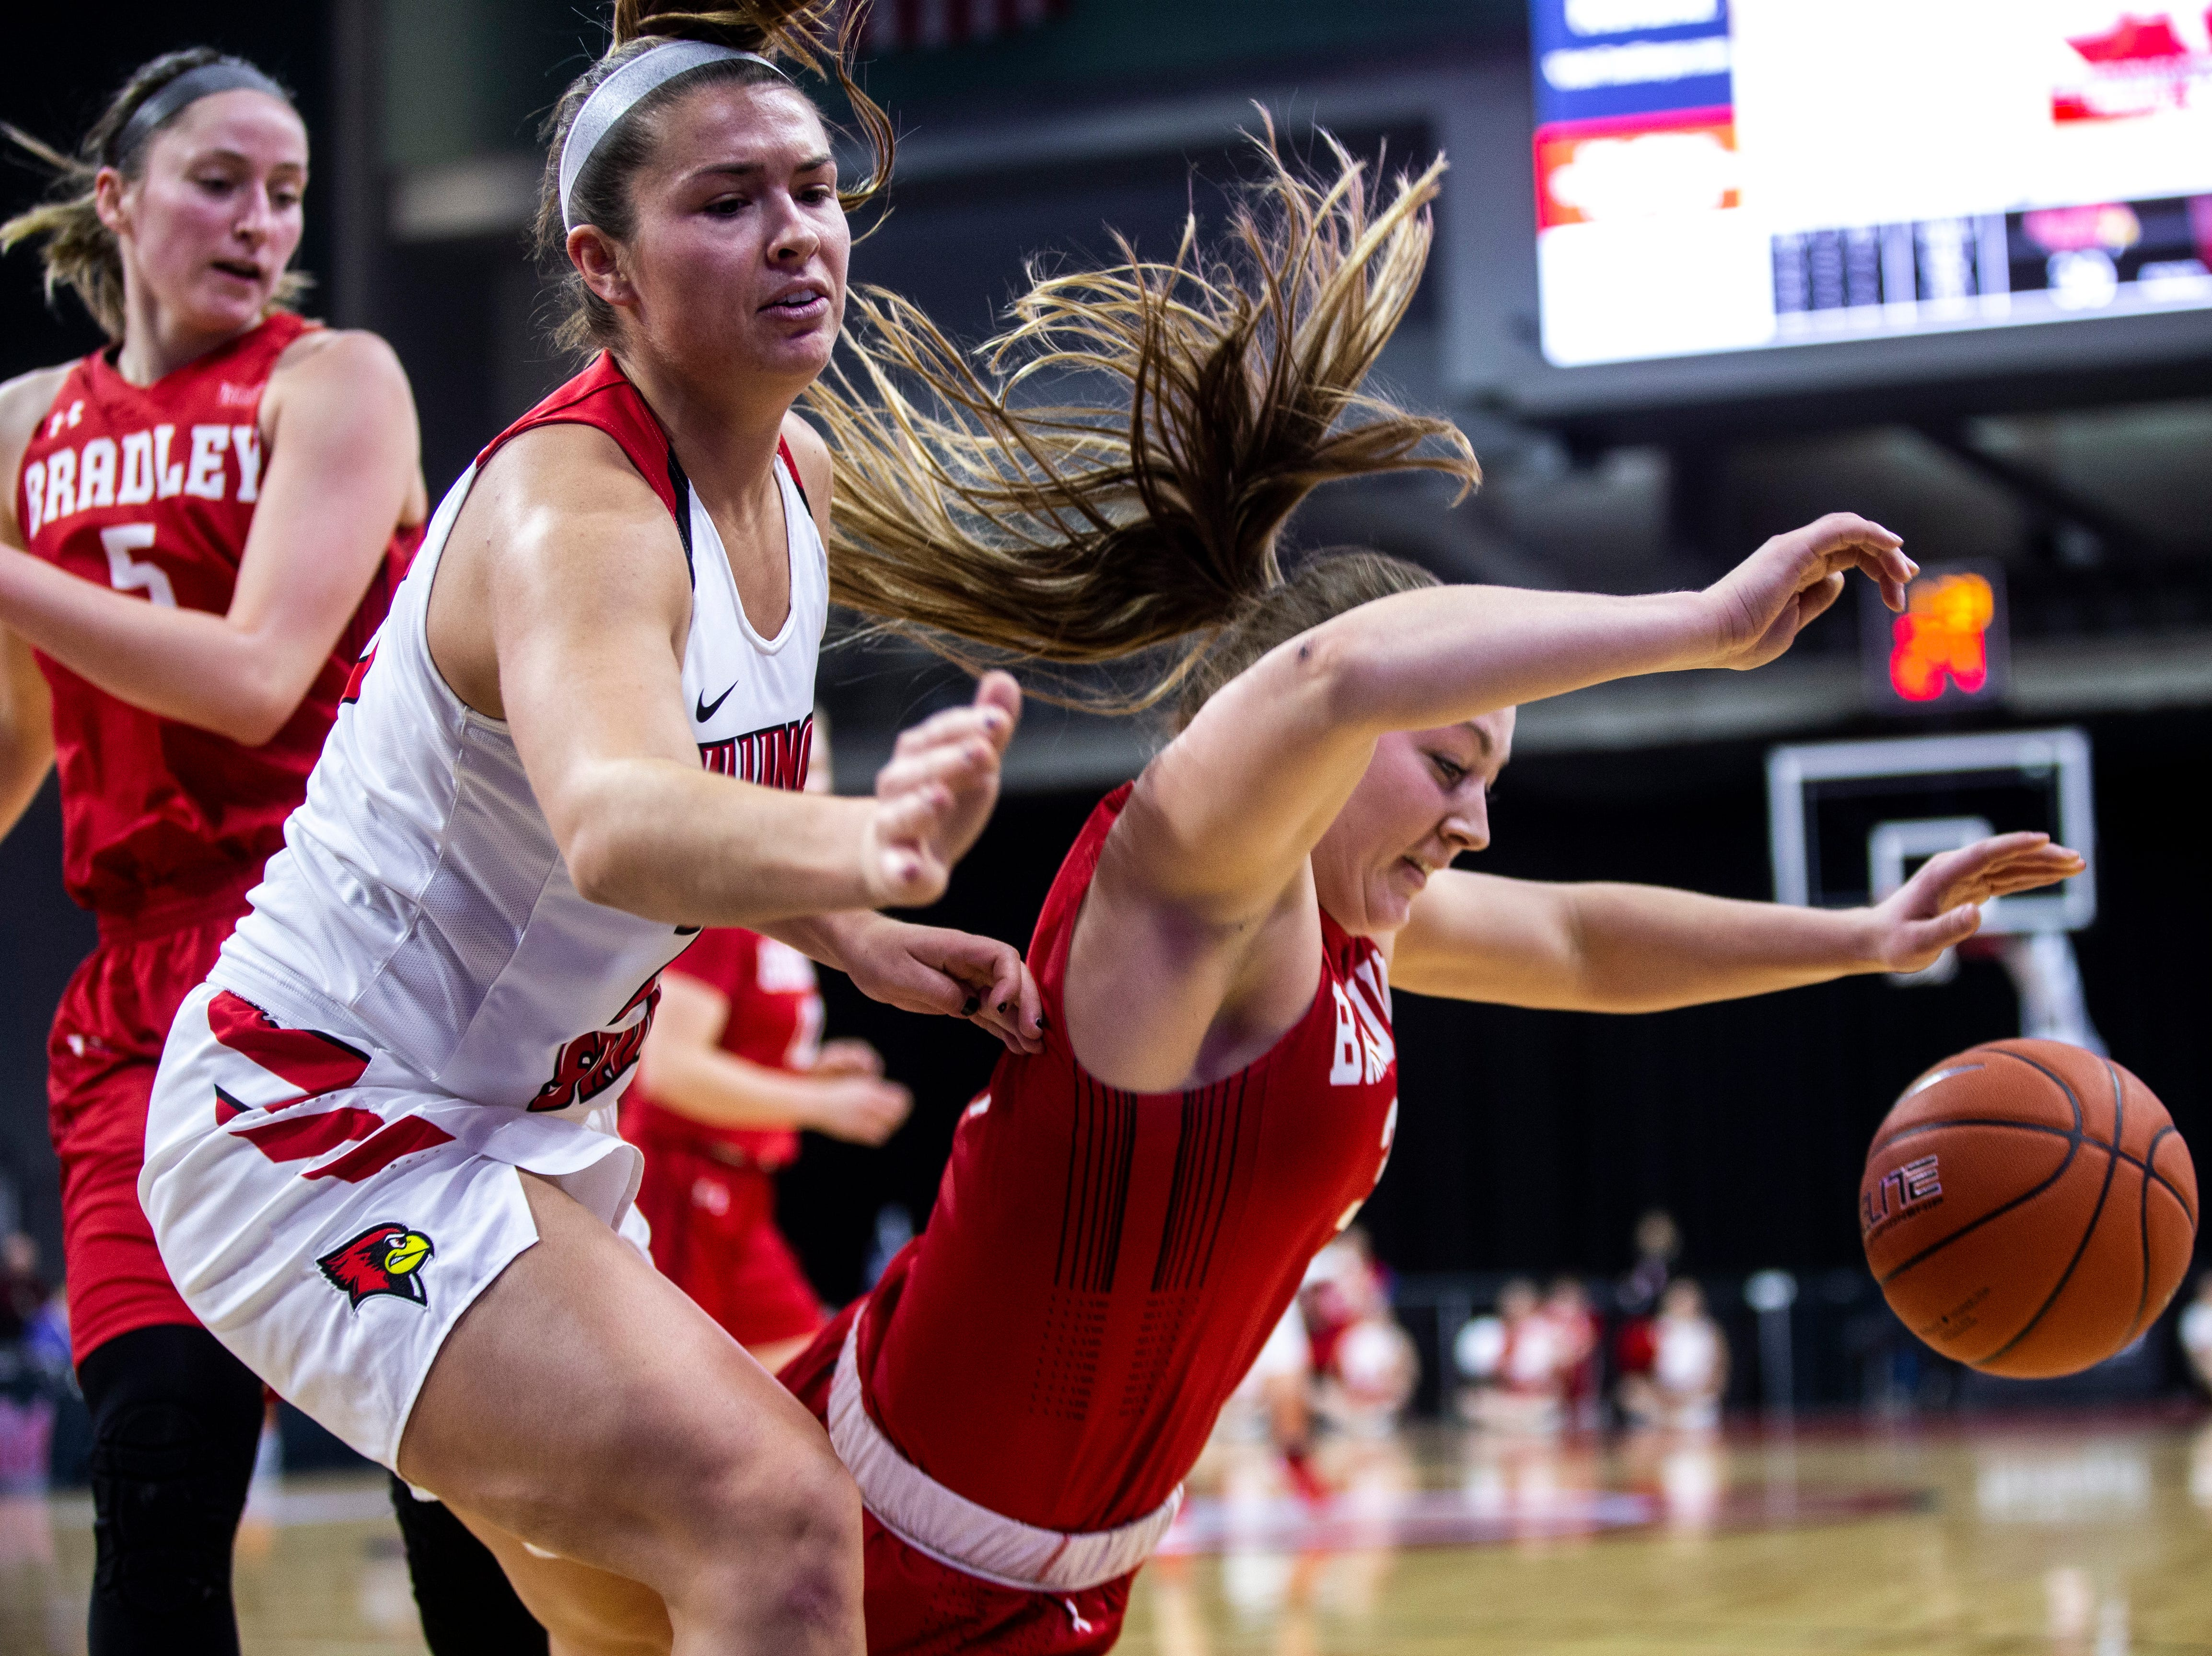 Bradley guard Gabi Haack, right, dives for a loose ball against Illinois State forward Lexi Wallen during a NCAA Missouri Valley Conference women's basketball quarterfinal tournament game, Friday, March 15, 2019, at the TaxSlayer Center in Moline, Illinois.